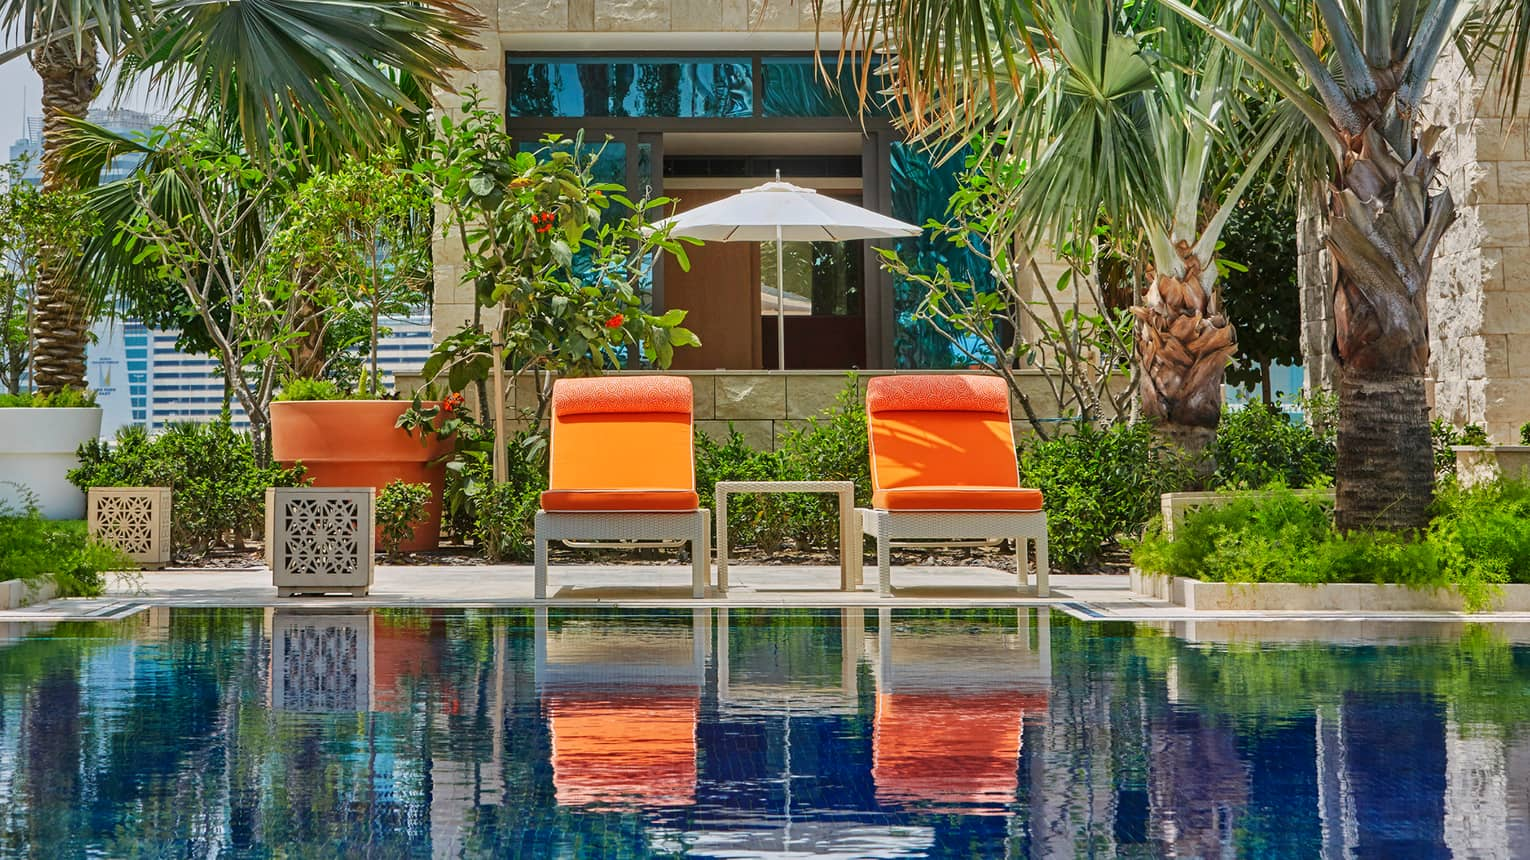 Two orange patio chairs in front of palm trees, tropical garden, swimming pool